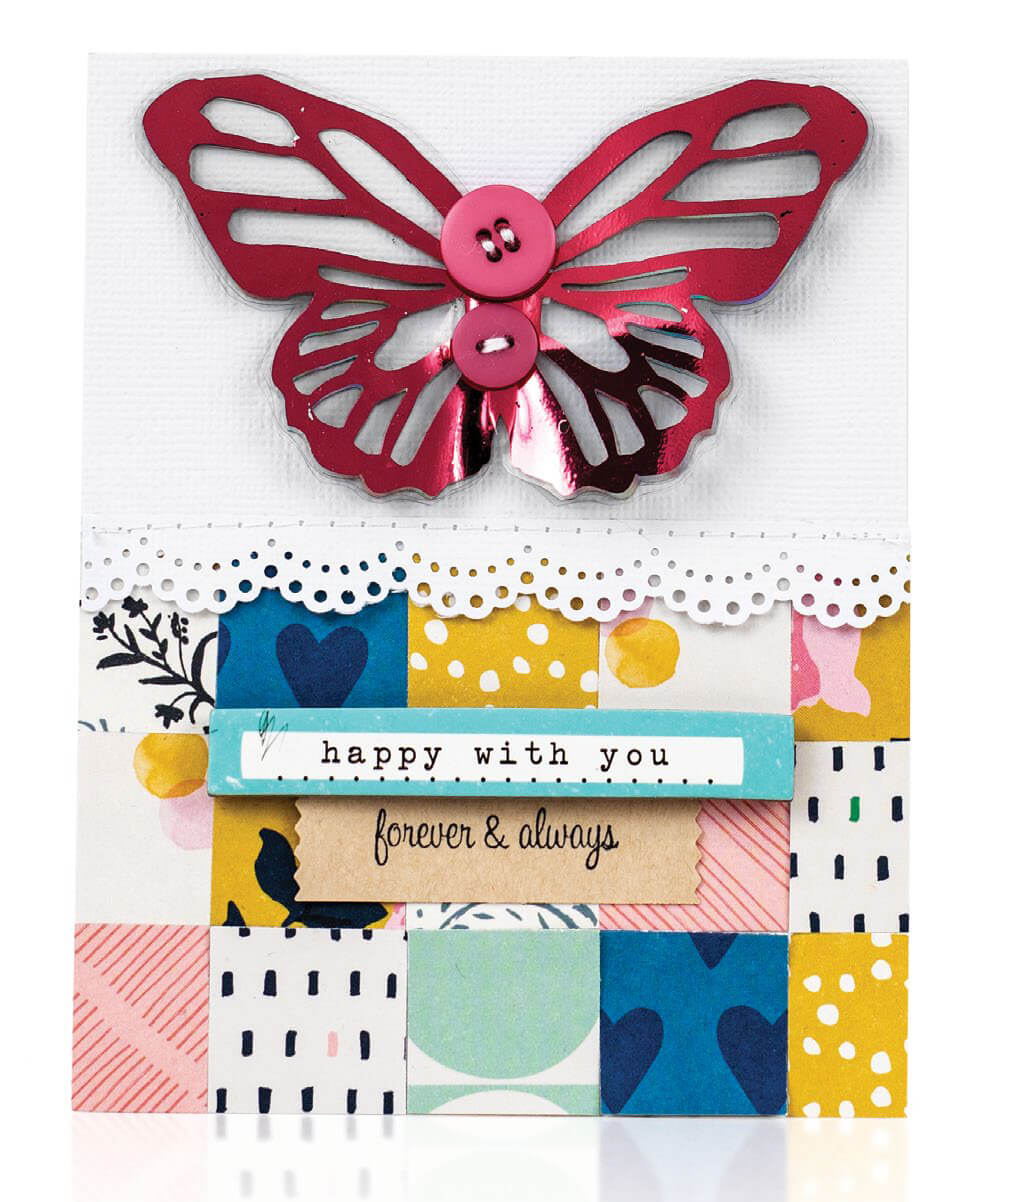 Scrapbook & Cards Today - Summer 2019 - Happy With You card by Nicole Nowosad